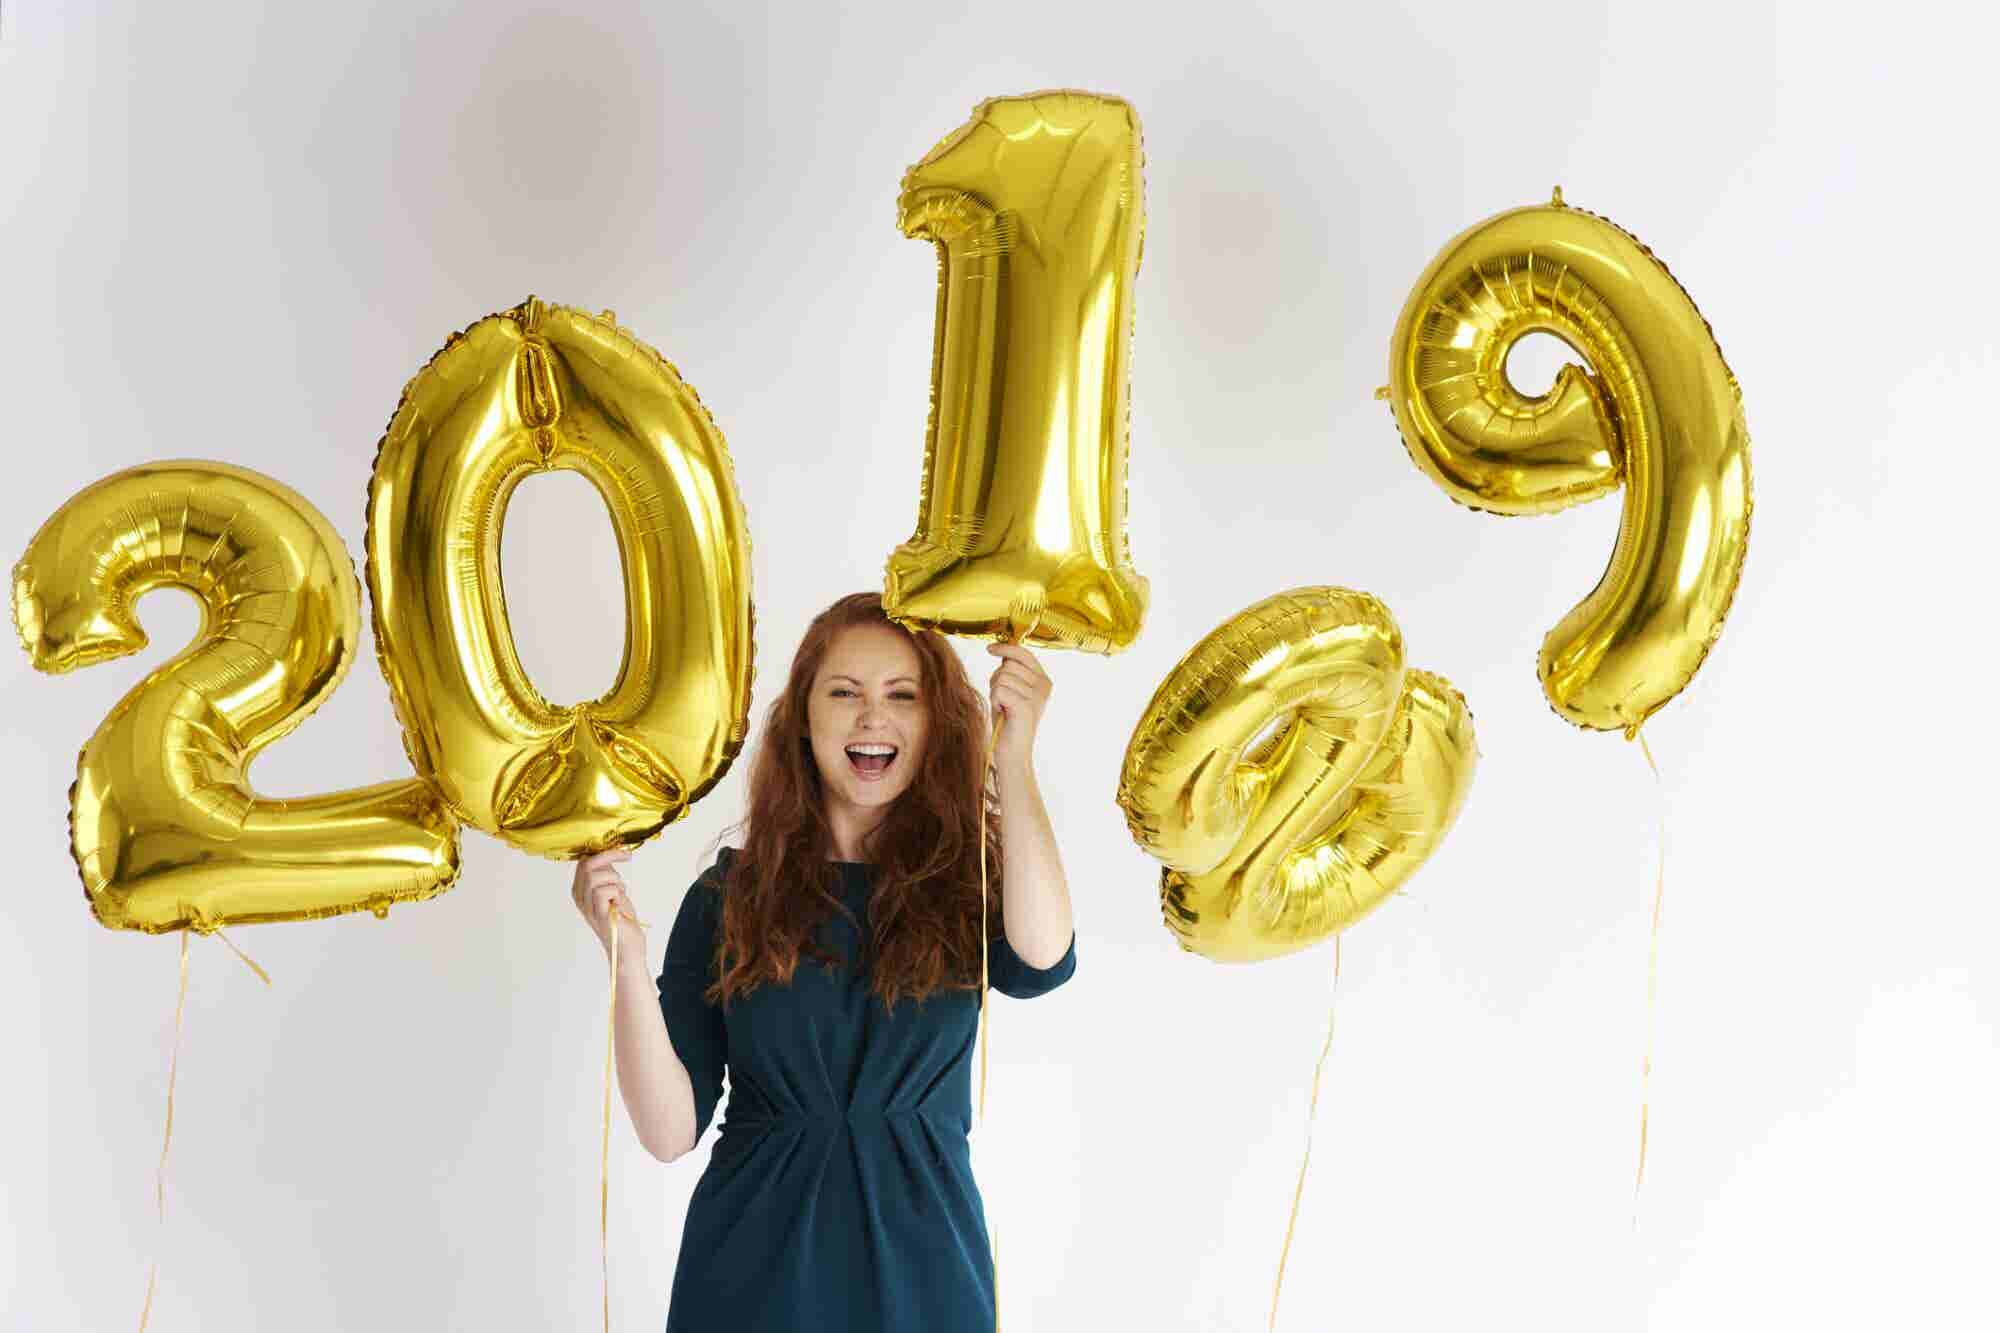 5 Steps to Making This Your Best Year Ever